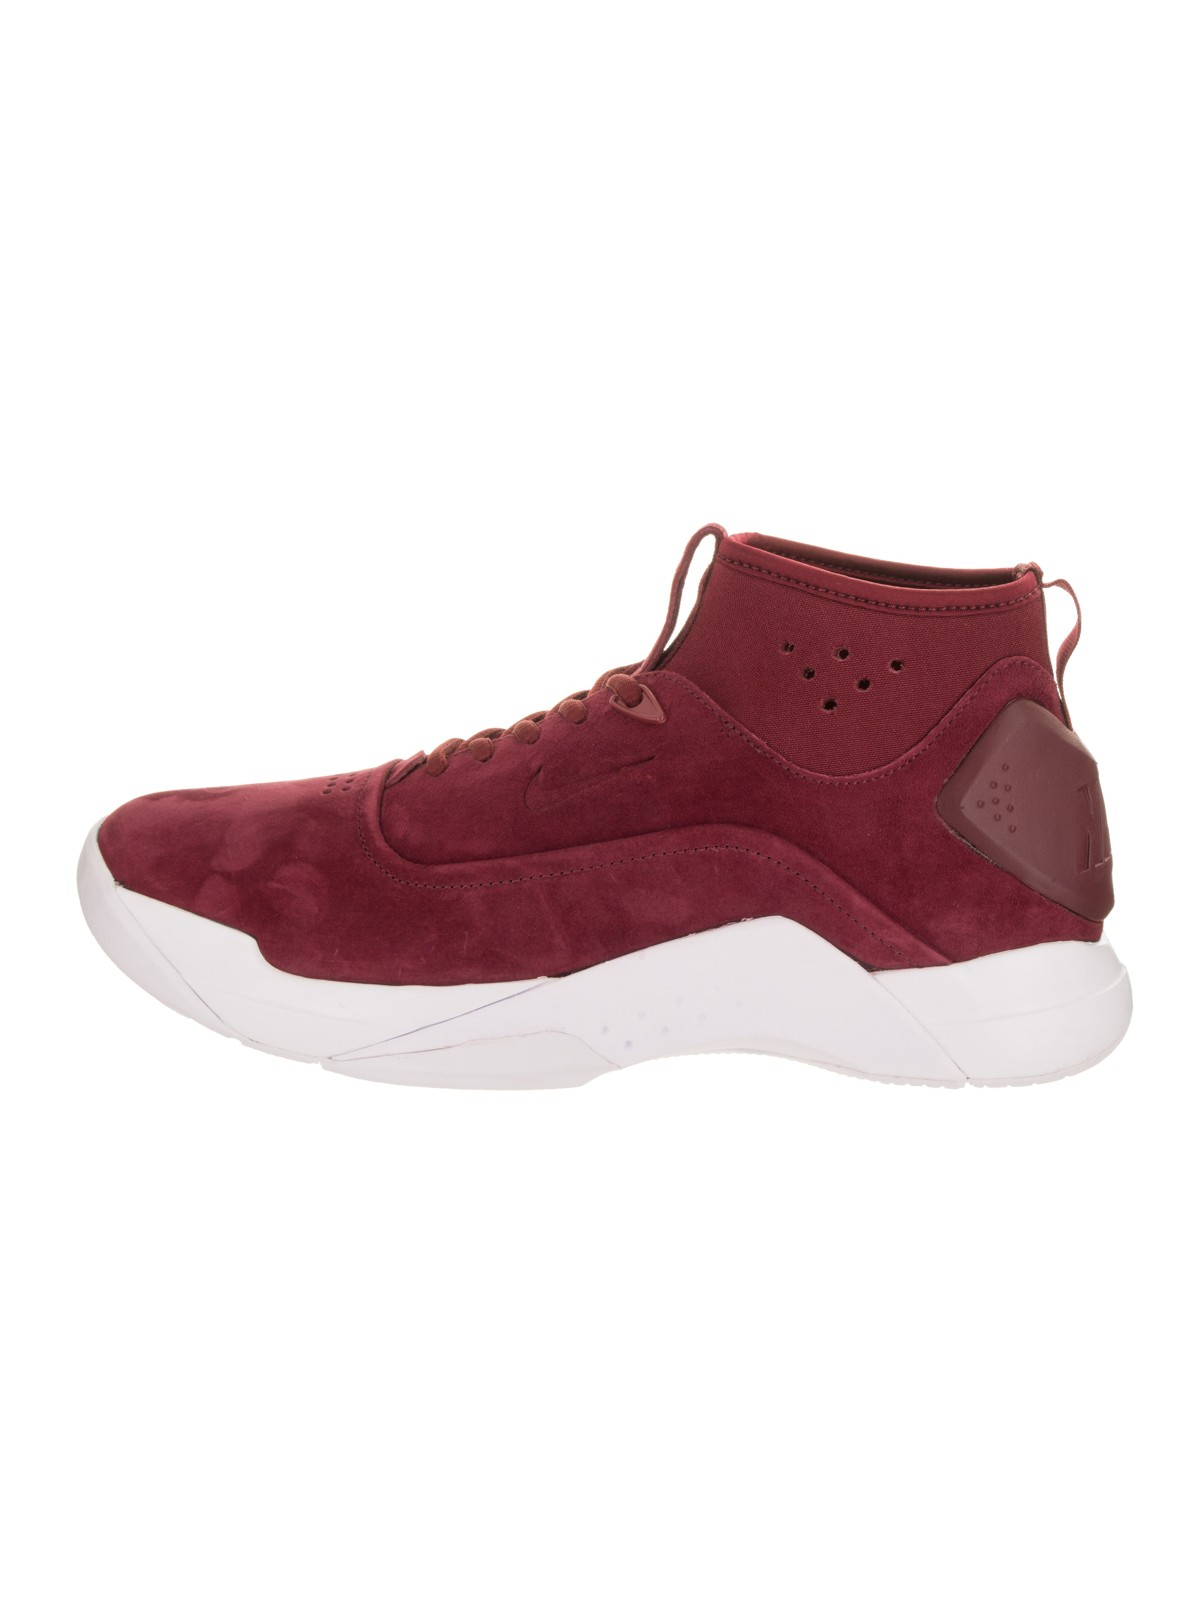 76bf6d2f1a5 Nike Men s Hyperdunk Low Crft Basketball Shoe. Walmart Global Product - See  details in description. 0 Reviews 0.0 5 stars